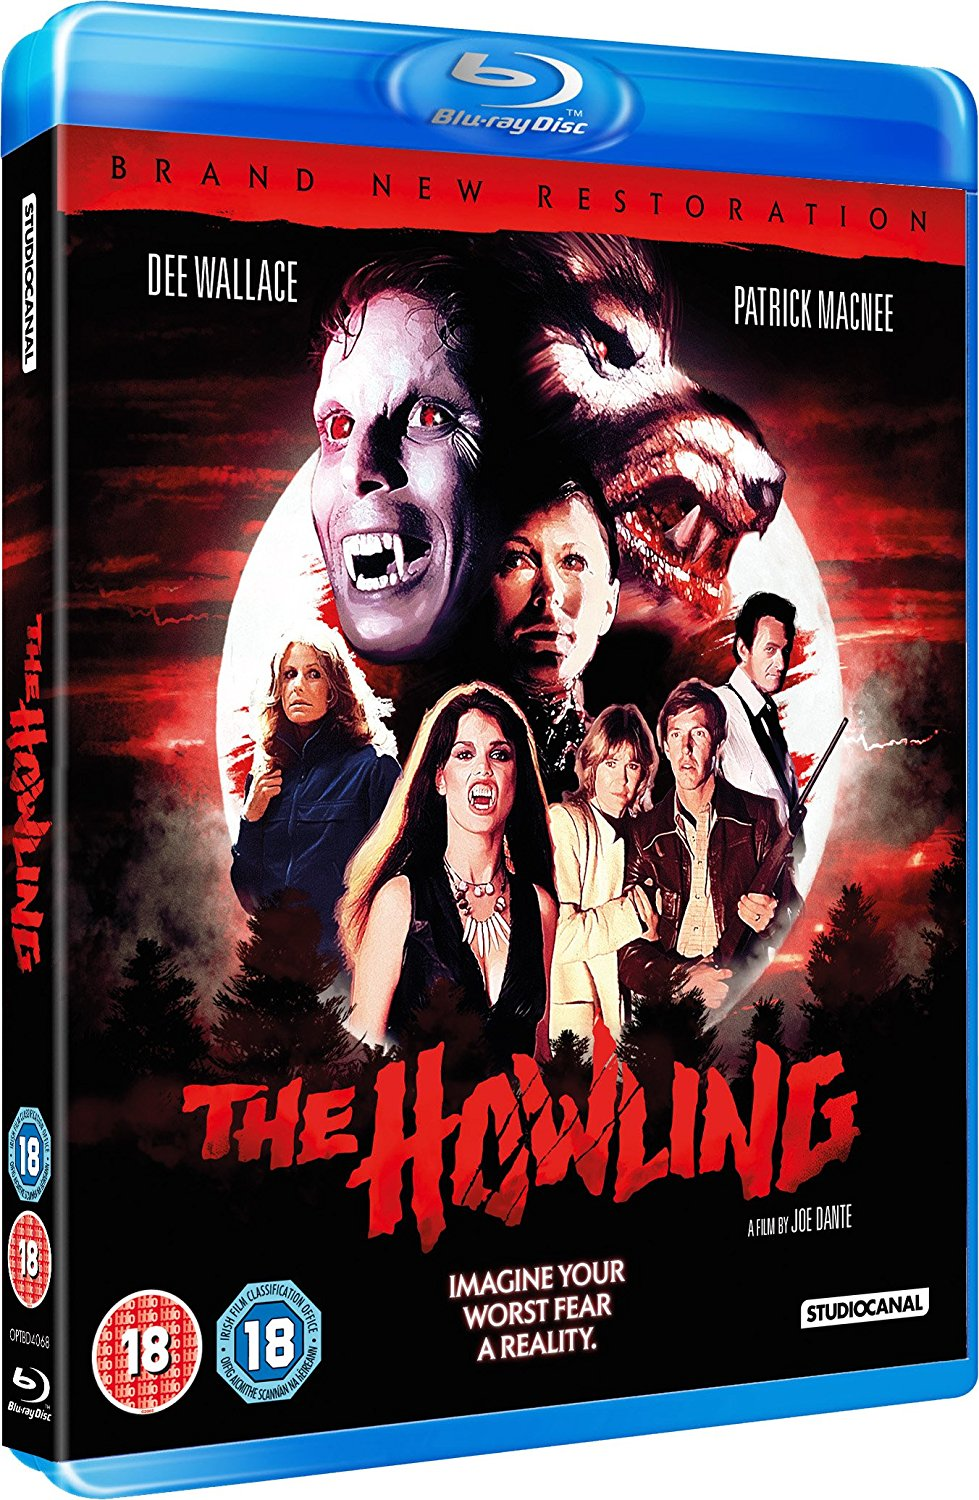 The Howling UK Blu-Ray